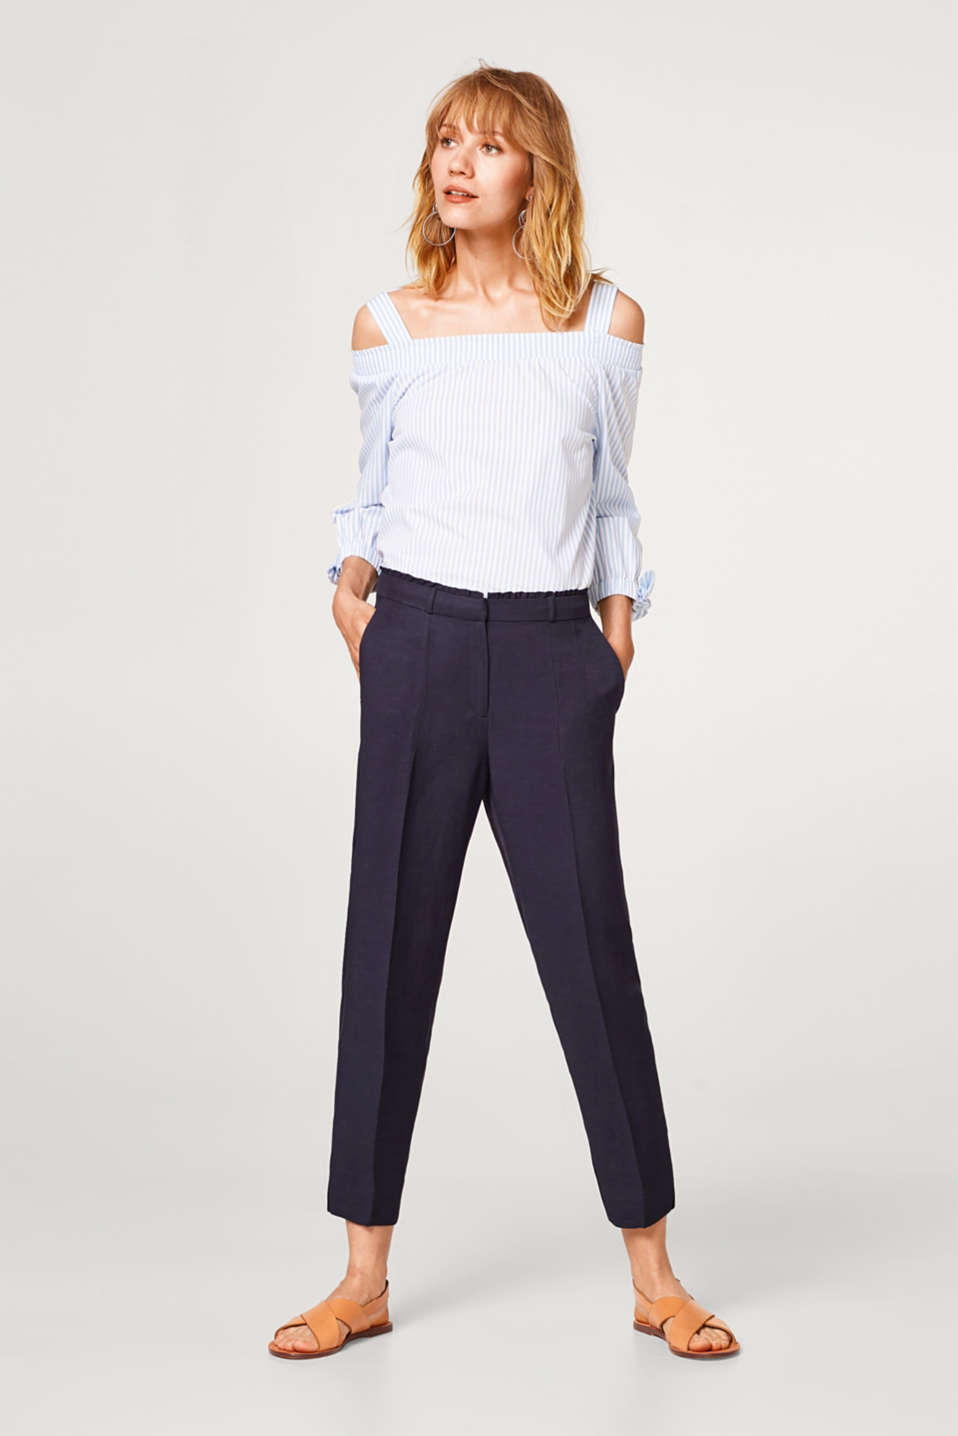 Esprit - FEMININE STYLE mix + match trousers with a frilled trim